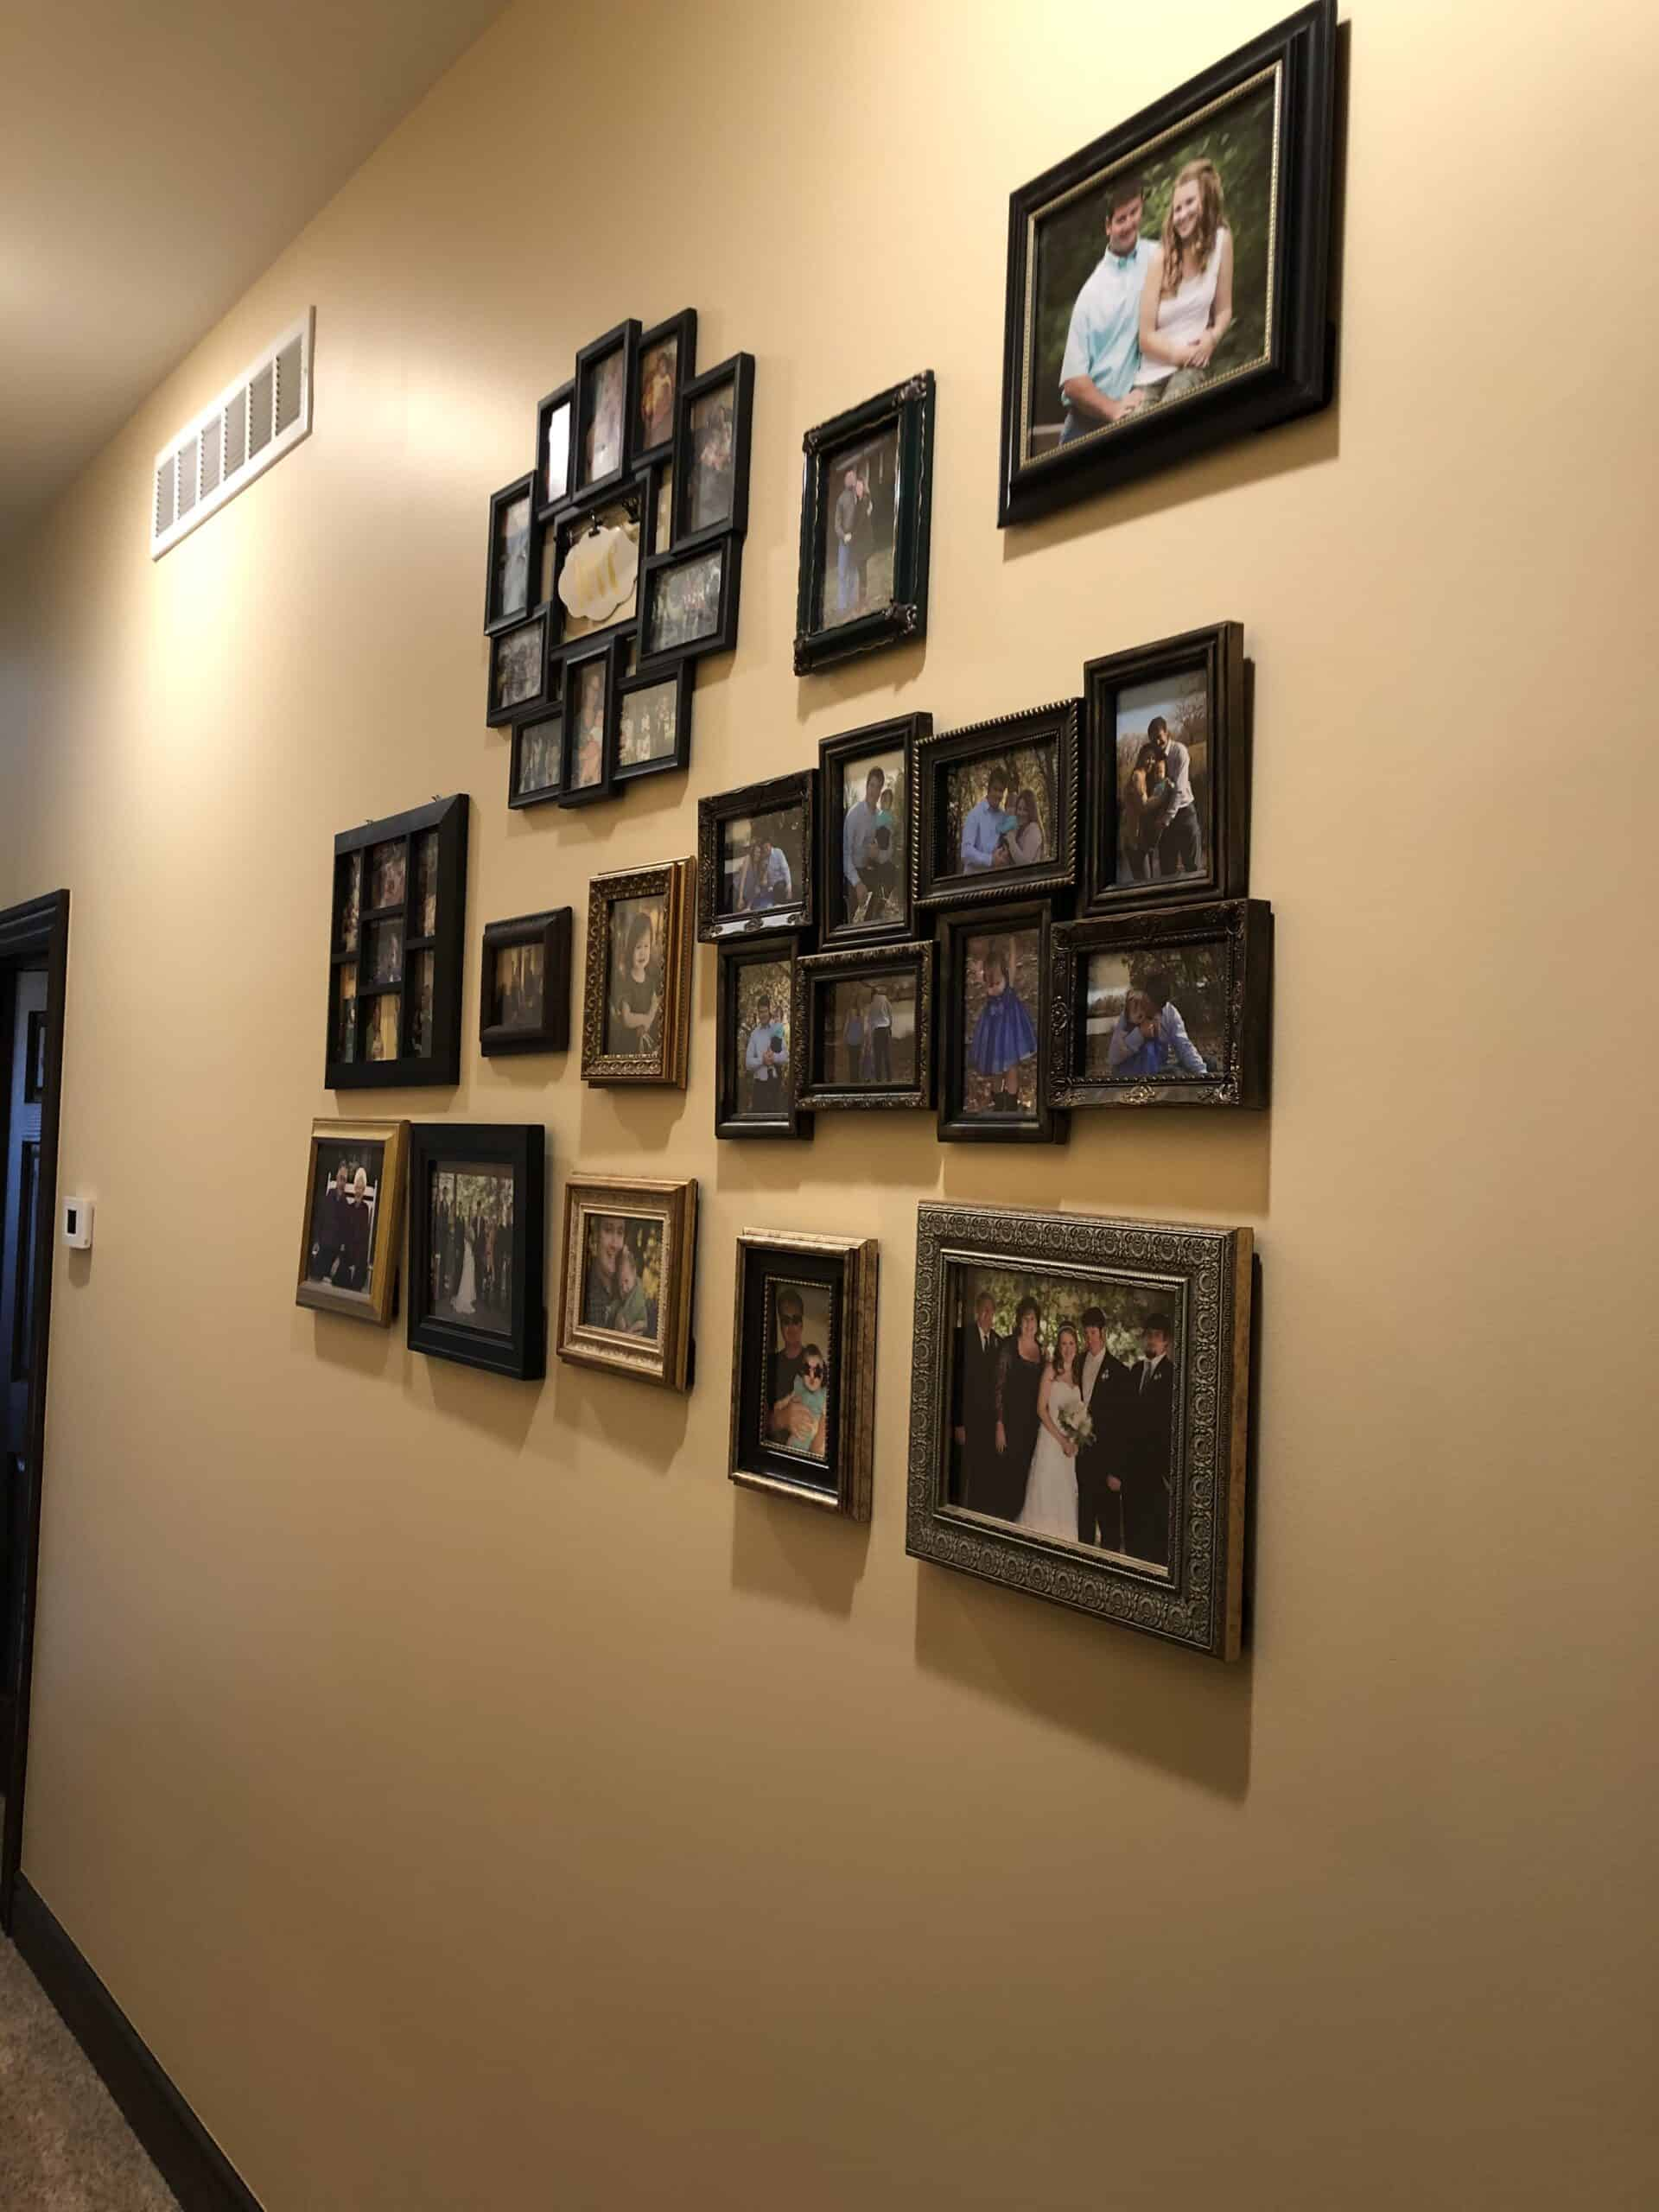 a hallway with picture frames hung up on the wall